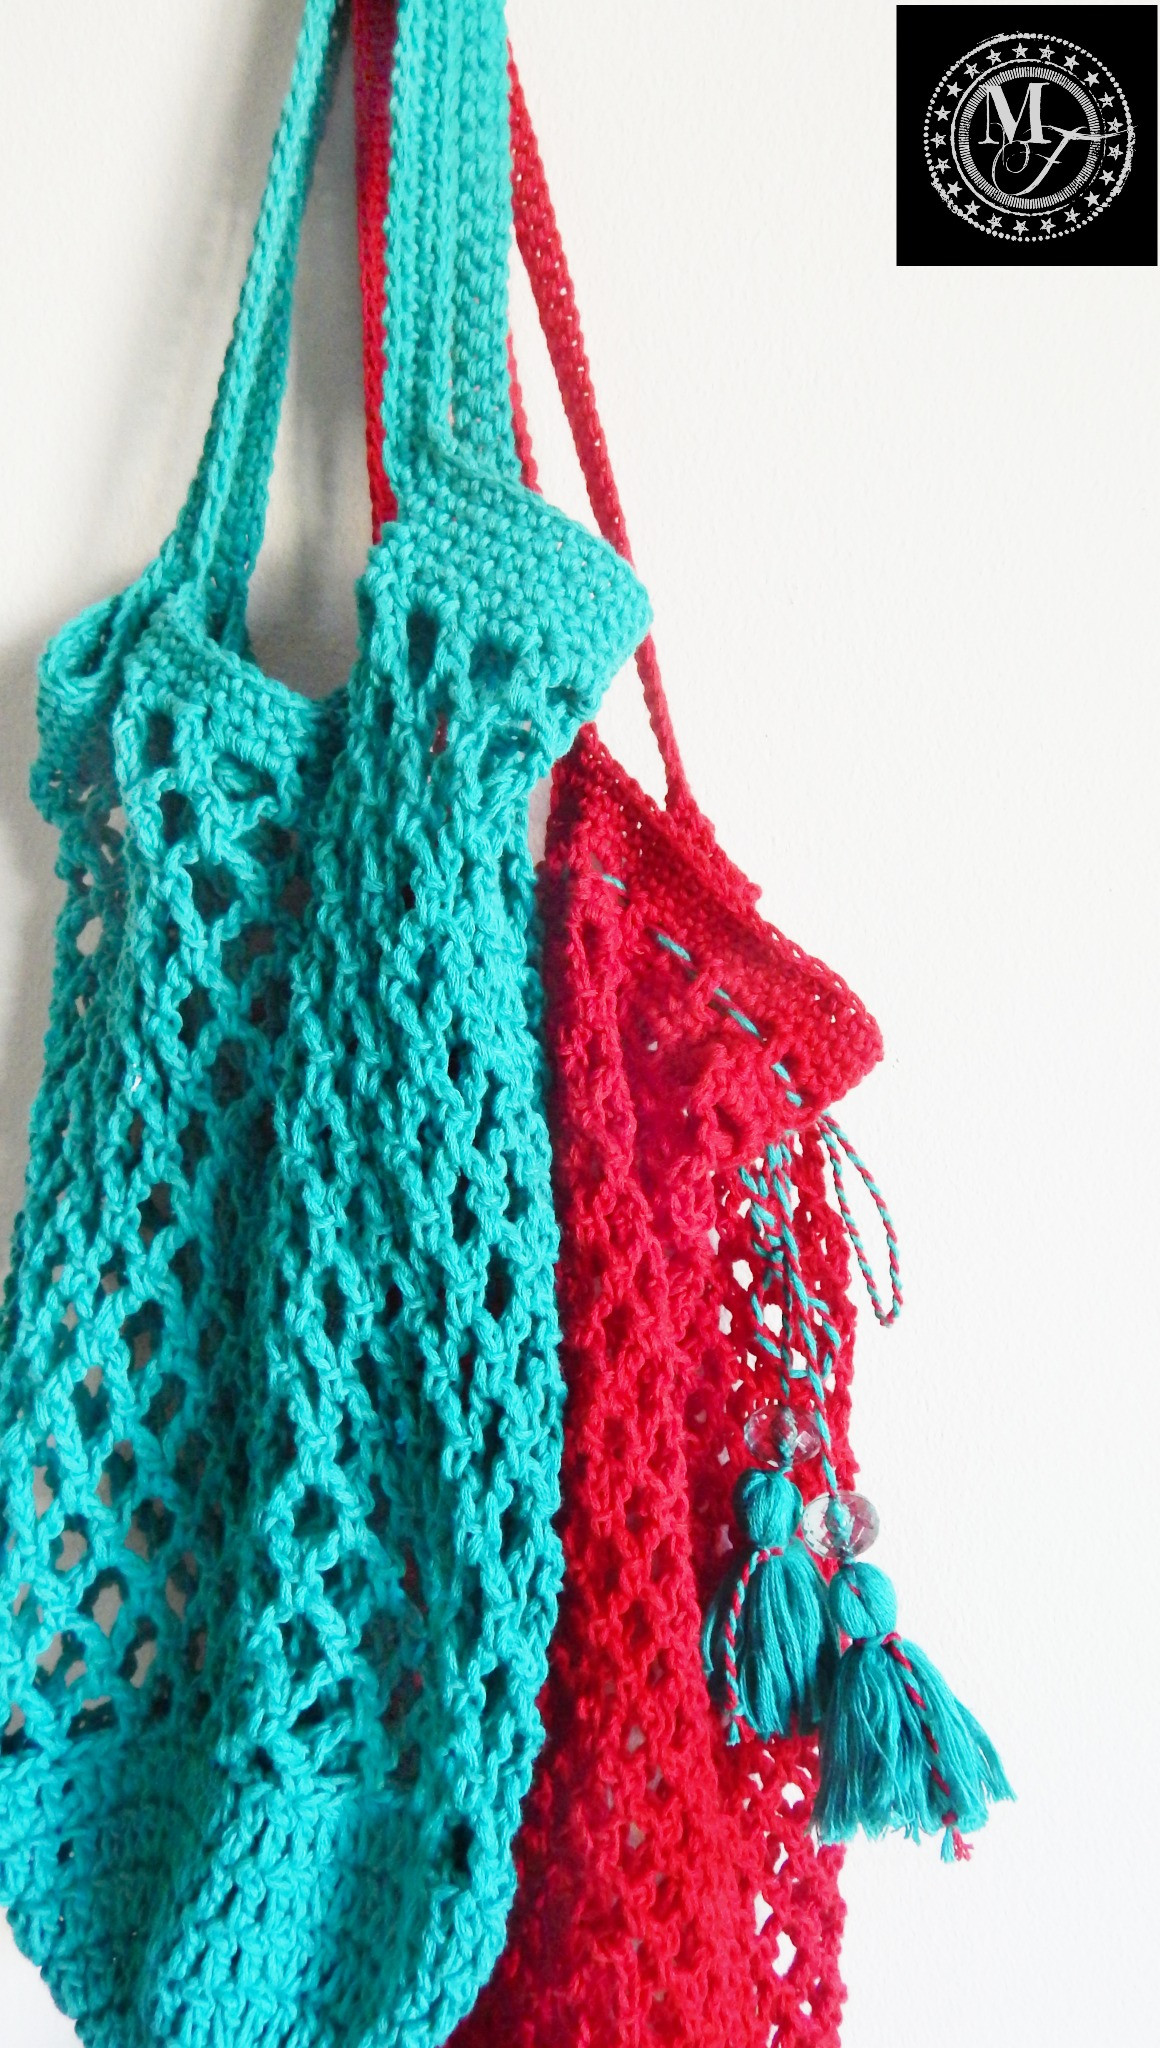 Crochet Patterns for Bags Beautiful Simple Stylish Market Bag Of Incredible 40 Pics Crochet Patterns for Bags